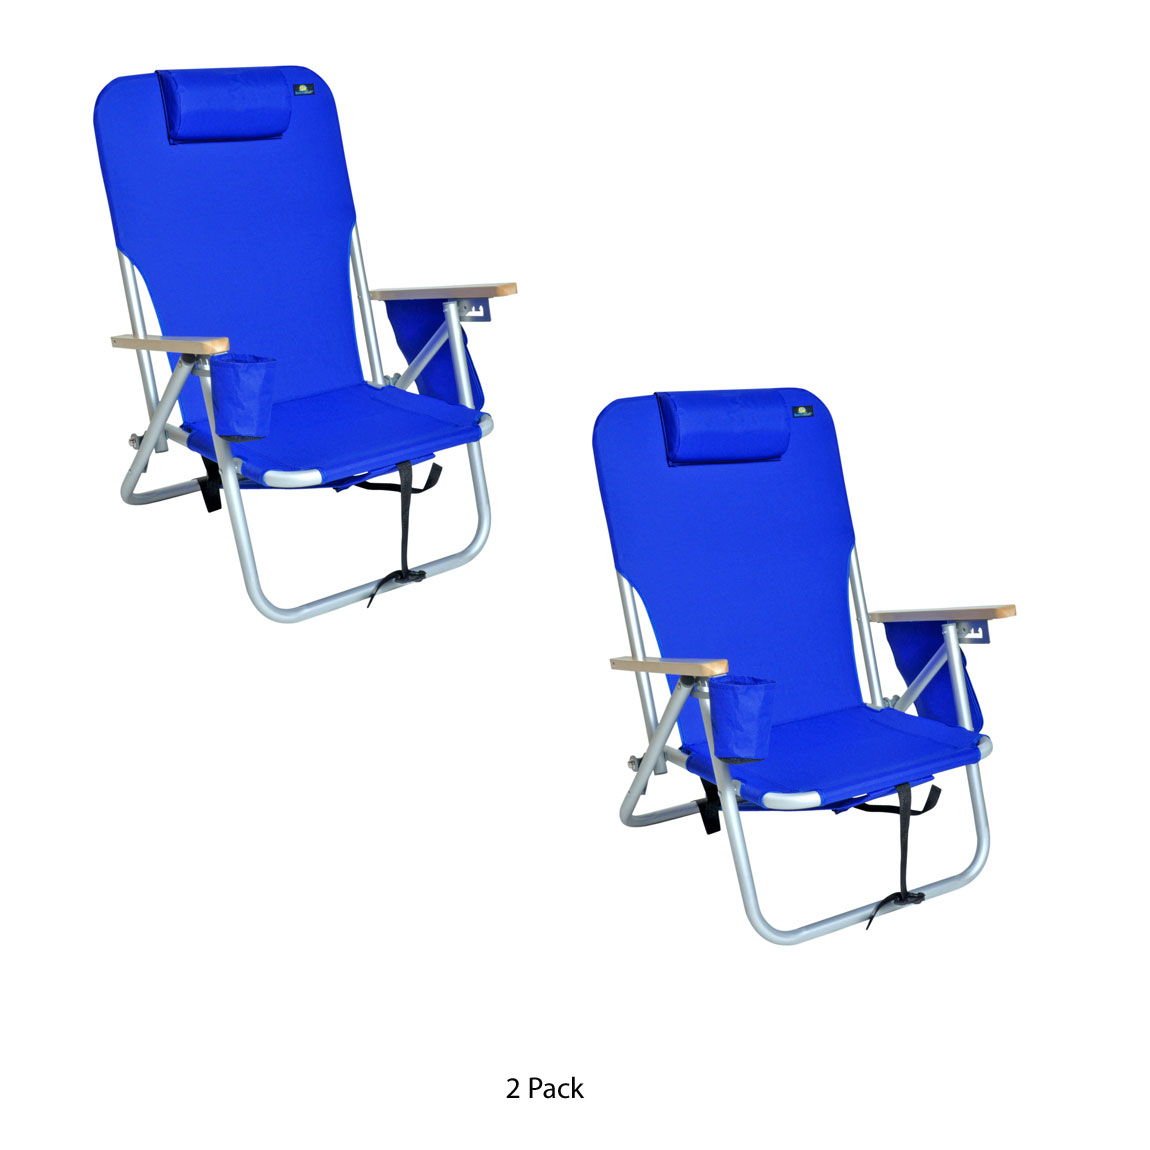 backpack chairs high back dining chair covers for sale lightweight beach camping aluminum 4 position set of 2